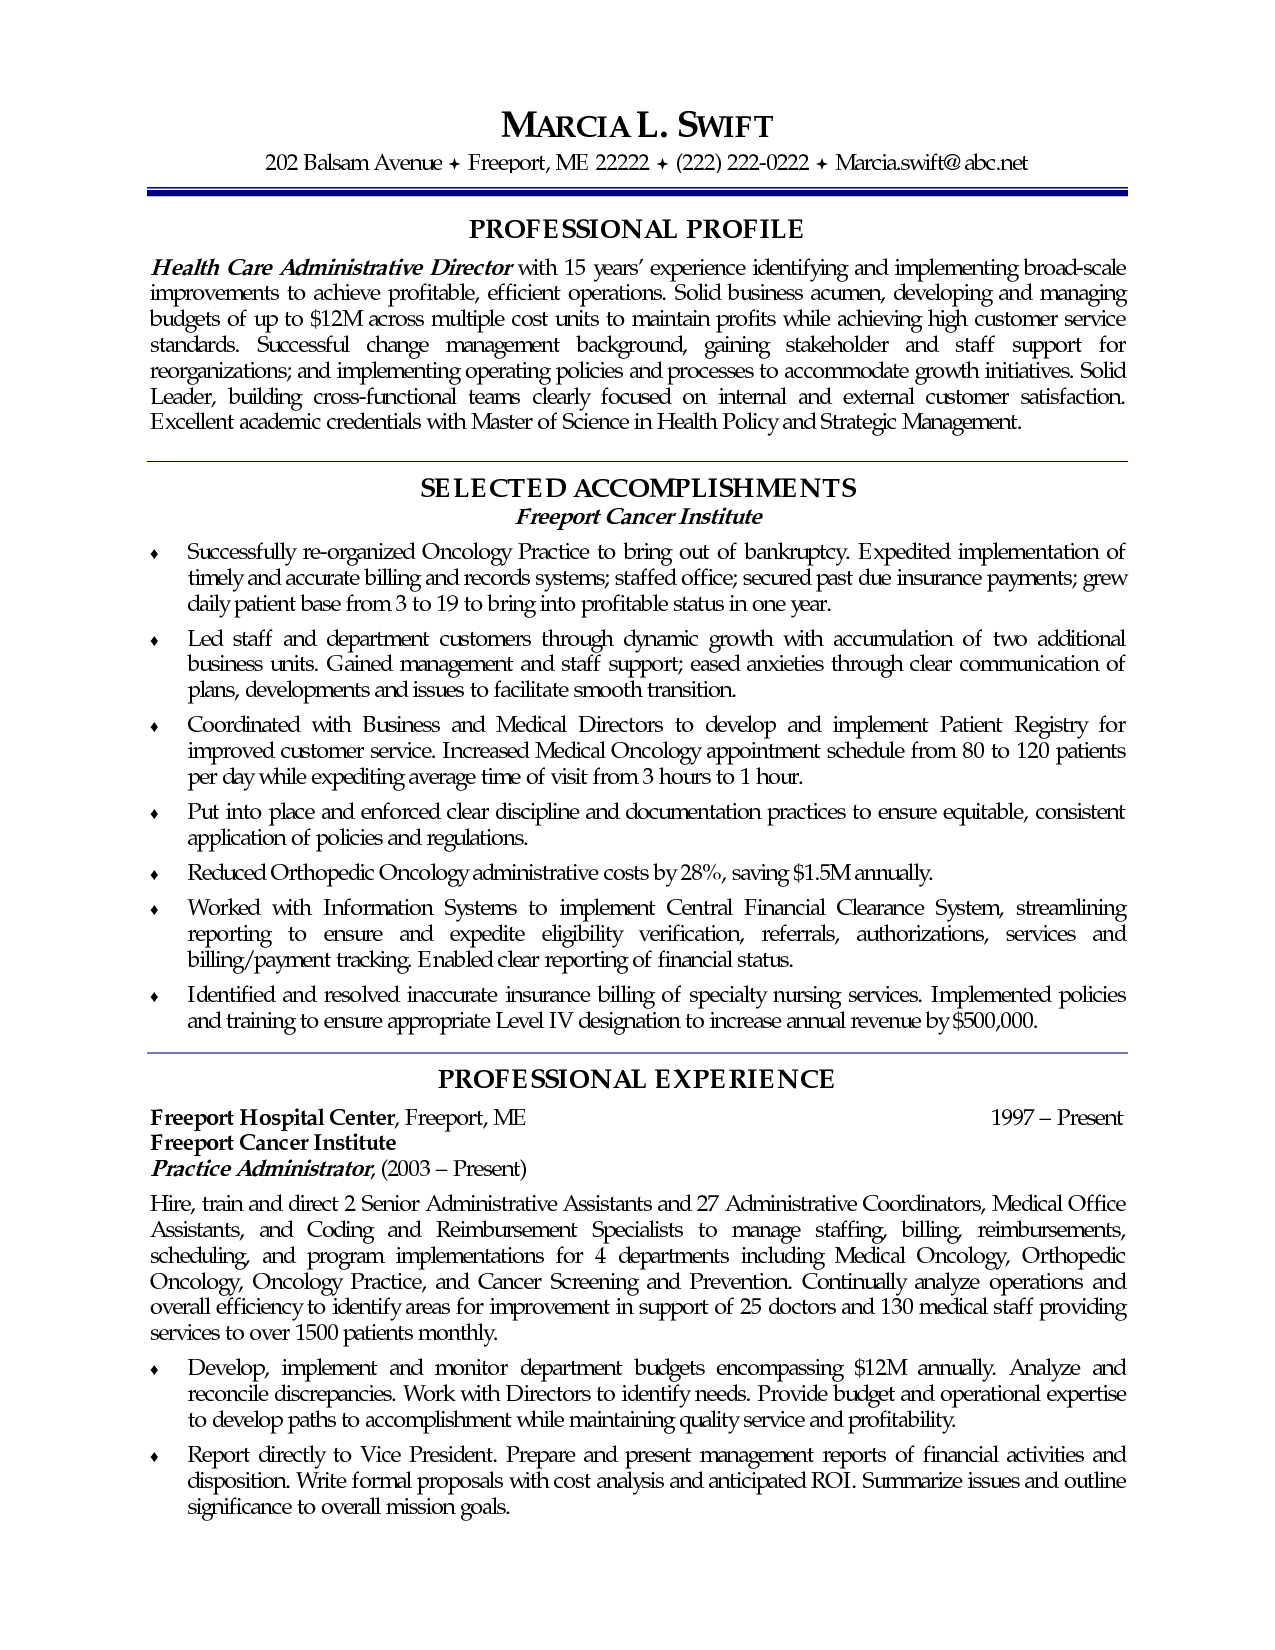 resume samples free Google Search Resume templates